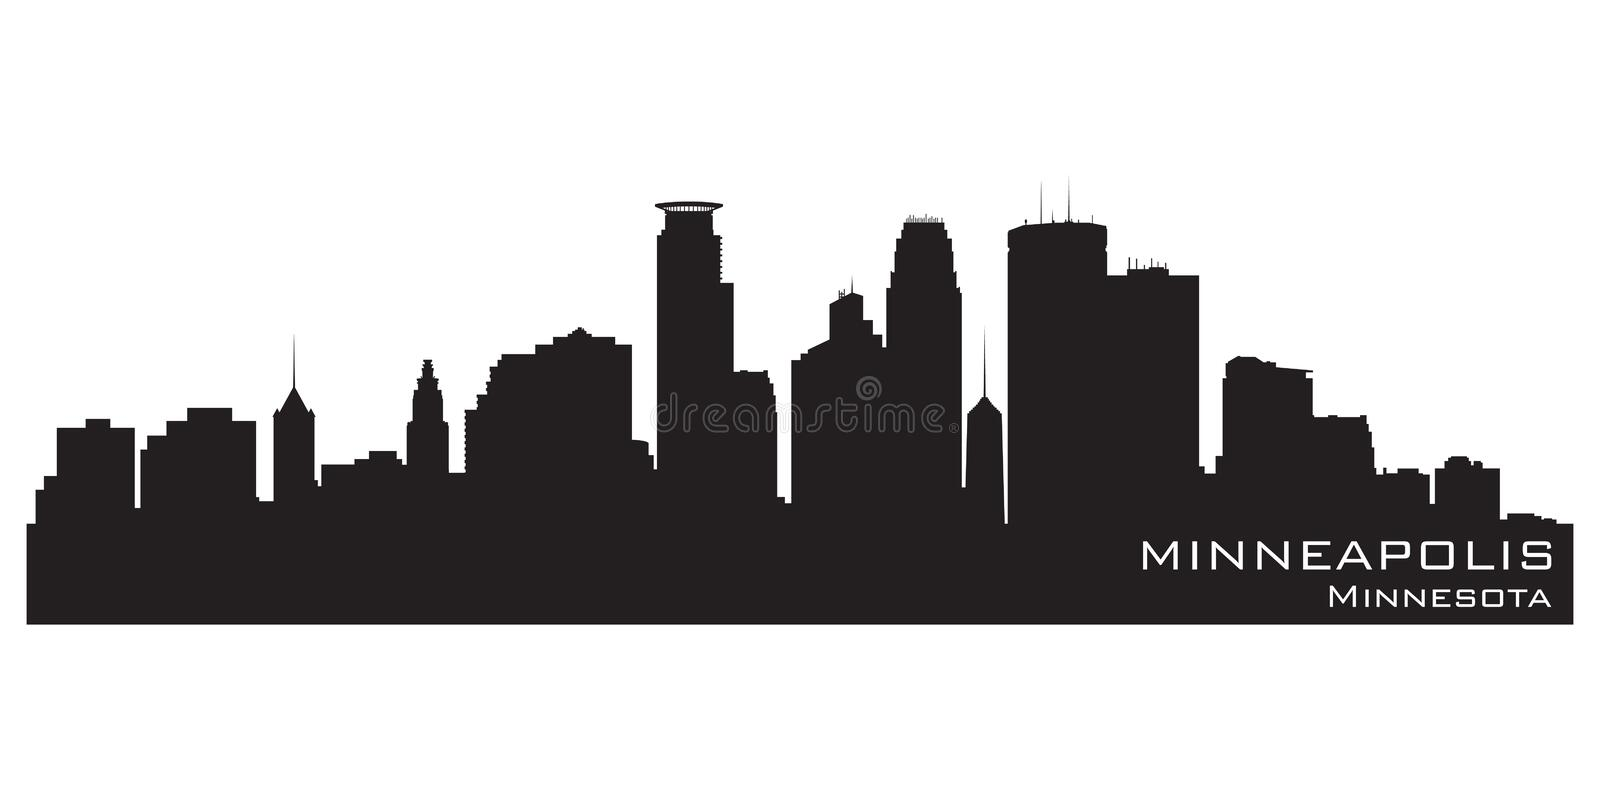 De stadshorizon van Minneapolis, Minnesota Gedetailleerd vectorsilhouet stock illustratie